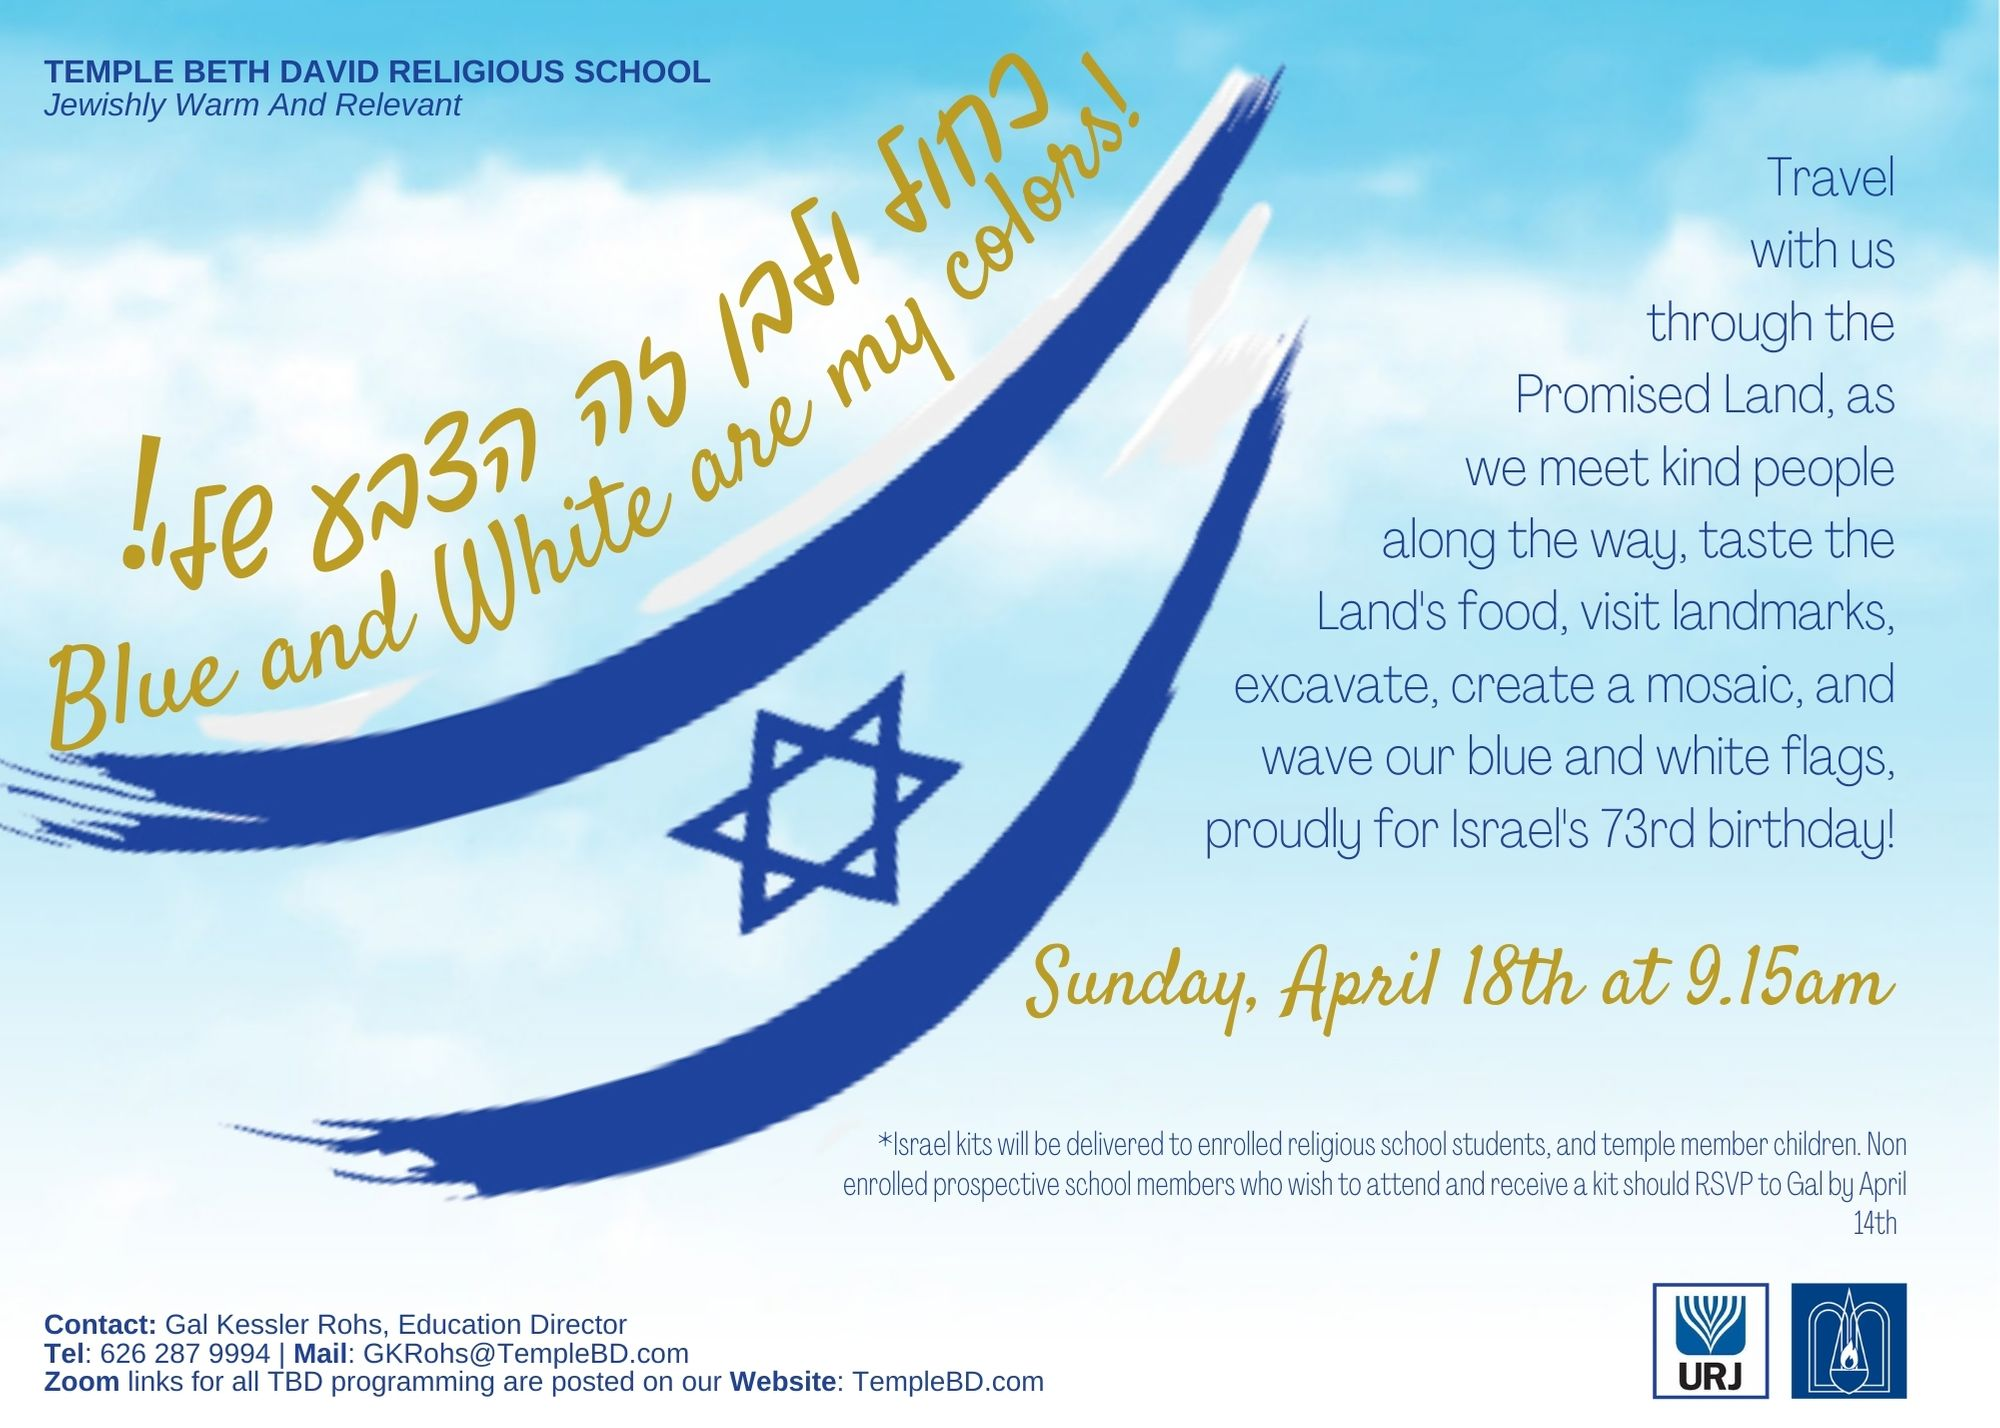 Click here for April 18th at 9.15am for our School's annual Israel Day